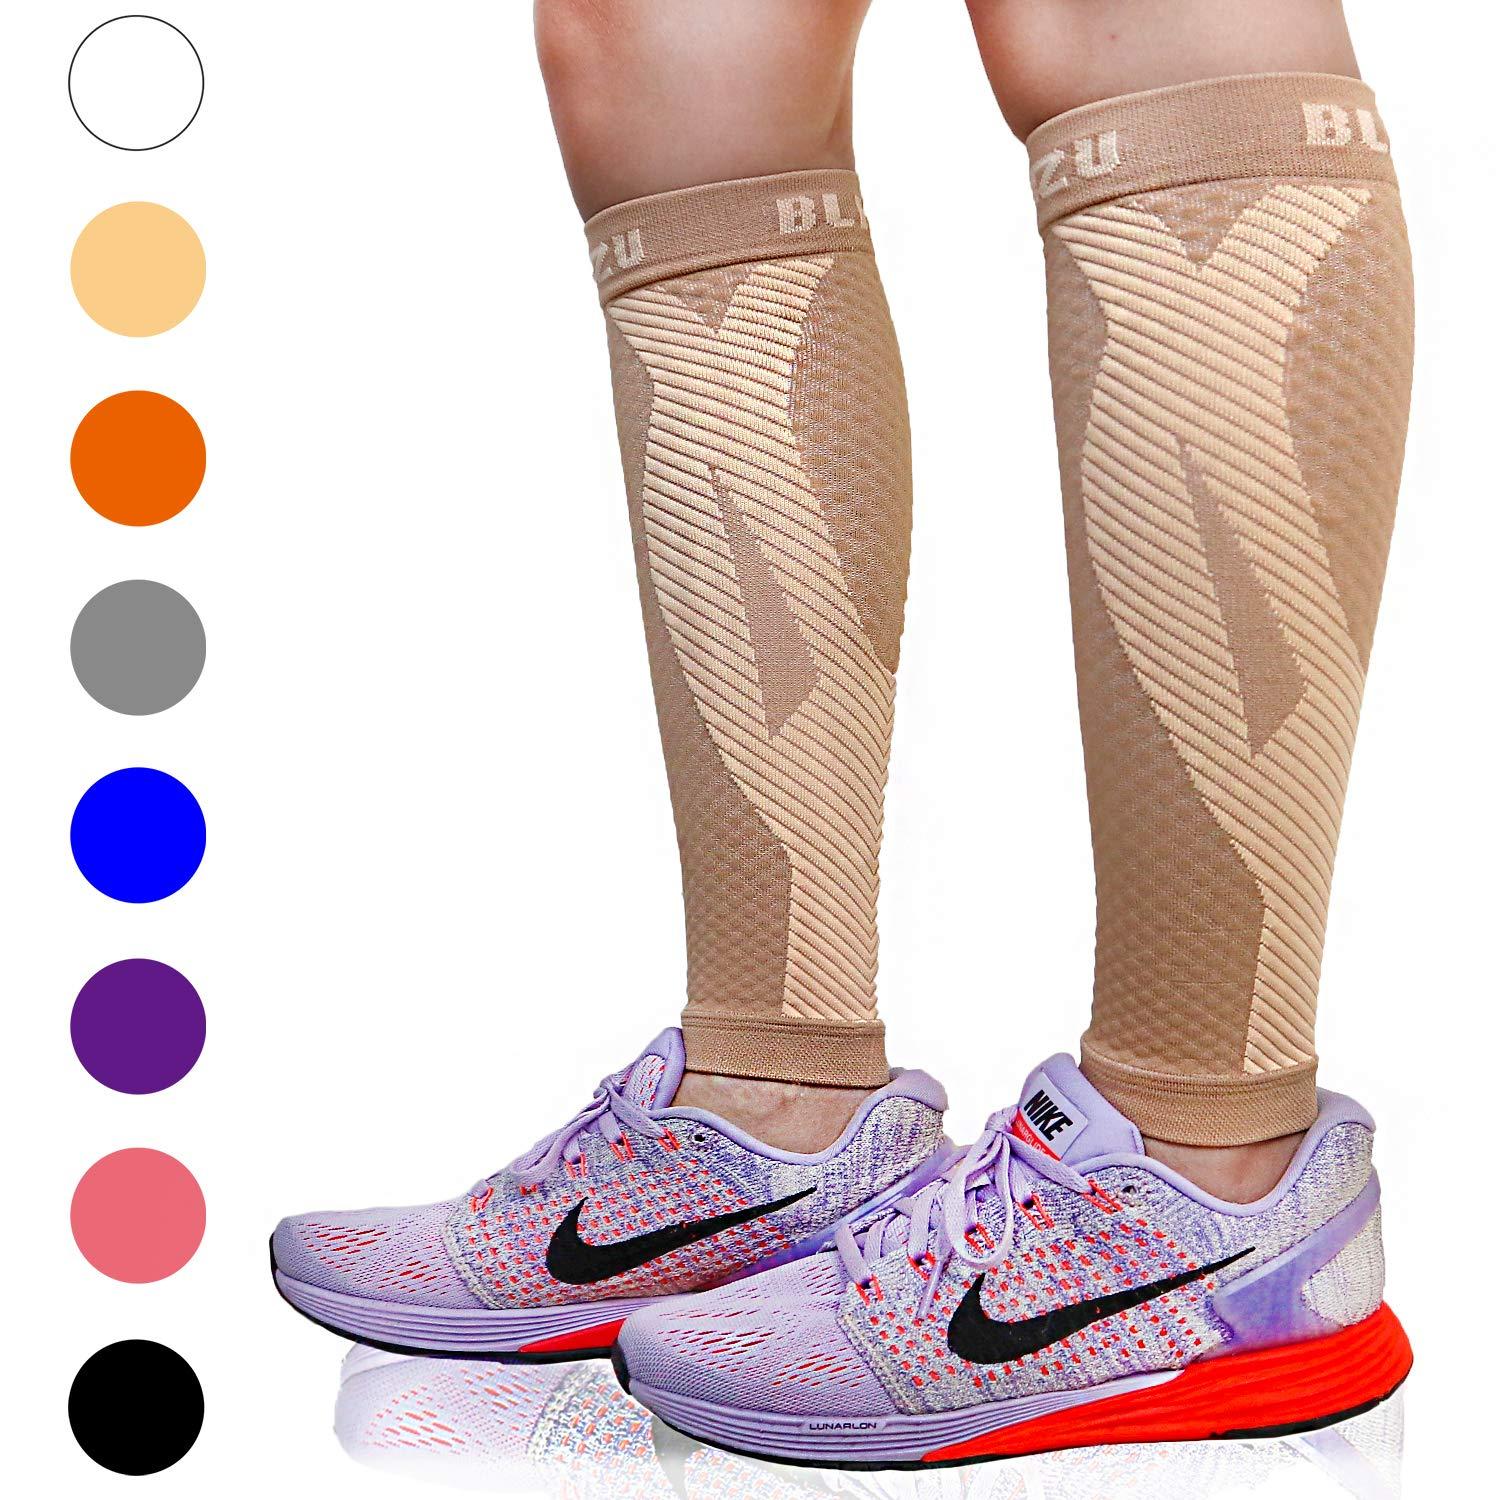 BLITZU Calf Compression Sleeve Leg Performance Support for Shin Splint & Calf Pain Relief. Men Women Runners Guards Sleeves for Running. Improves Circulation and Recovery (Nude, Small/Medium) by BLITZU